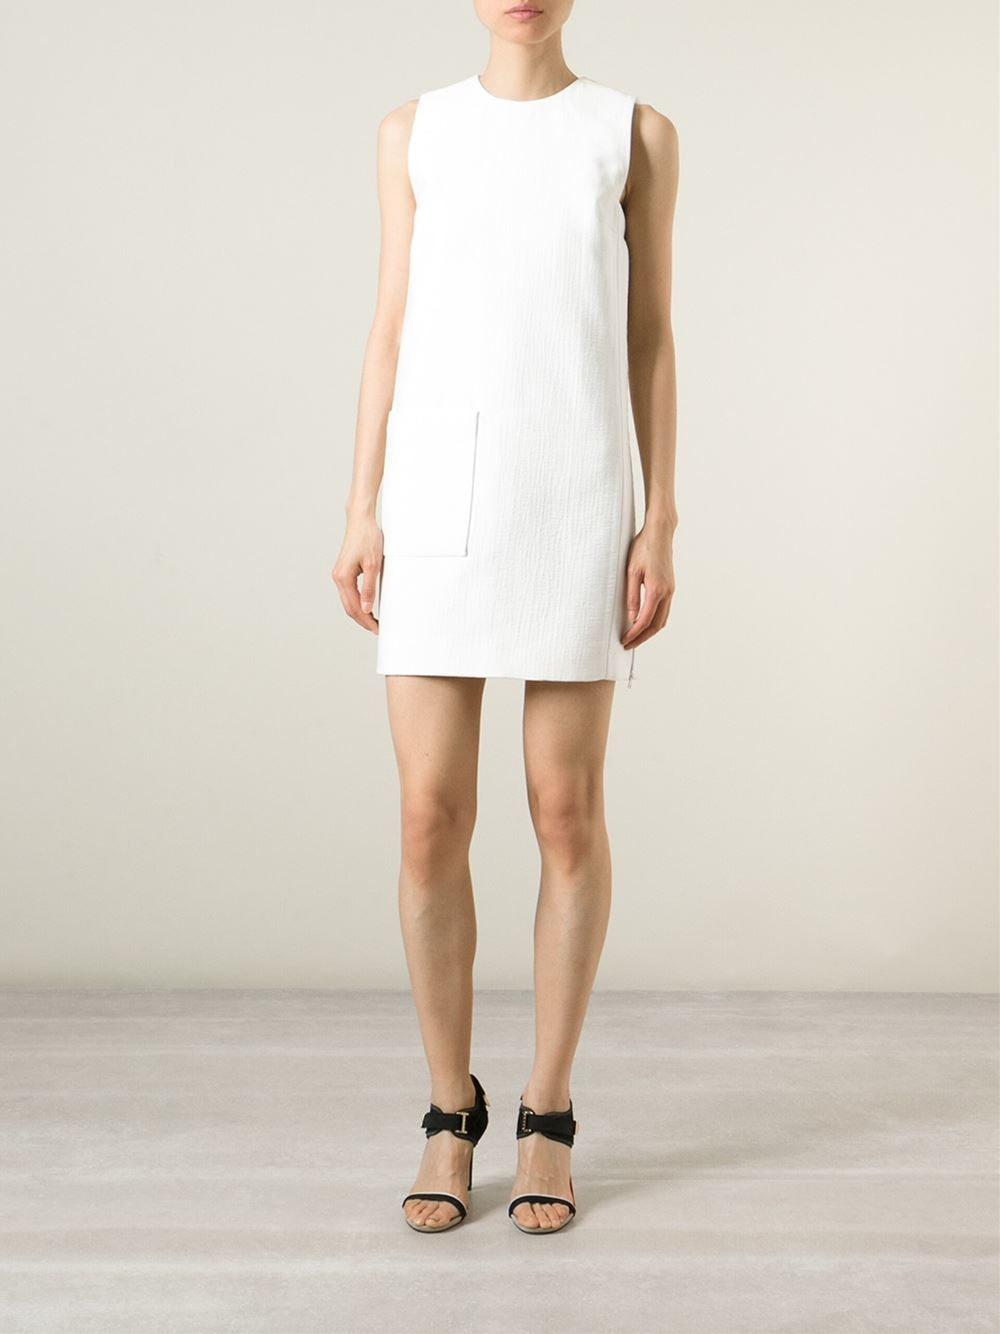 flamingo embroidered shift dress - White Victoria Beckham C7NcRZ